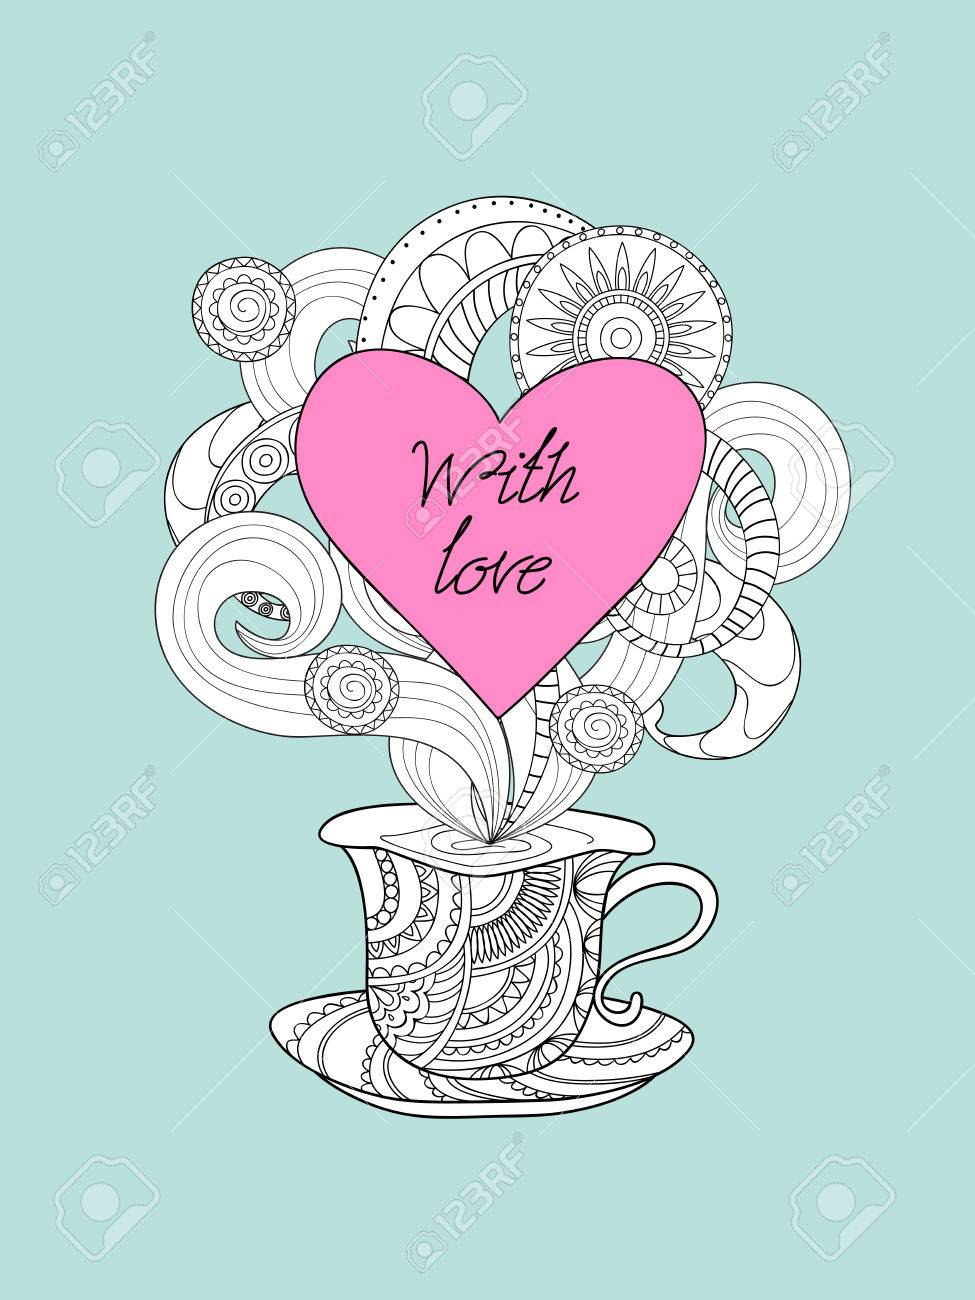 Hand drawn decorated cup in zen style and text with love image hand drawn decorated cup in zen style and text with love image for valentine card stopboris Image collections